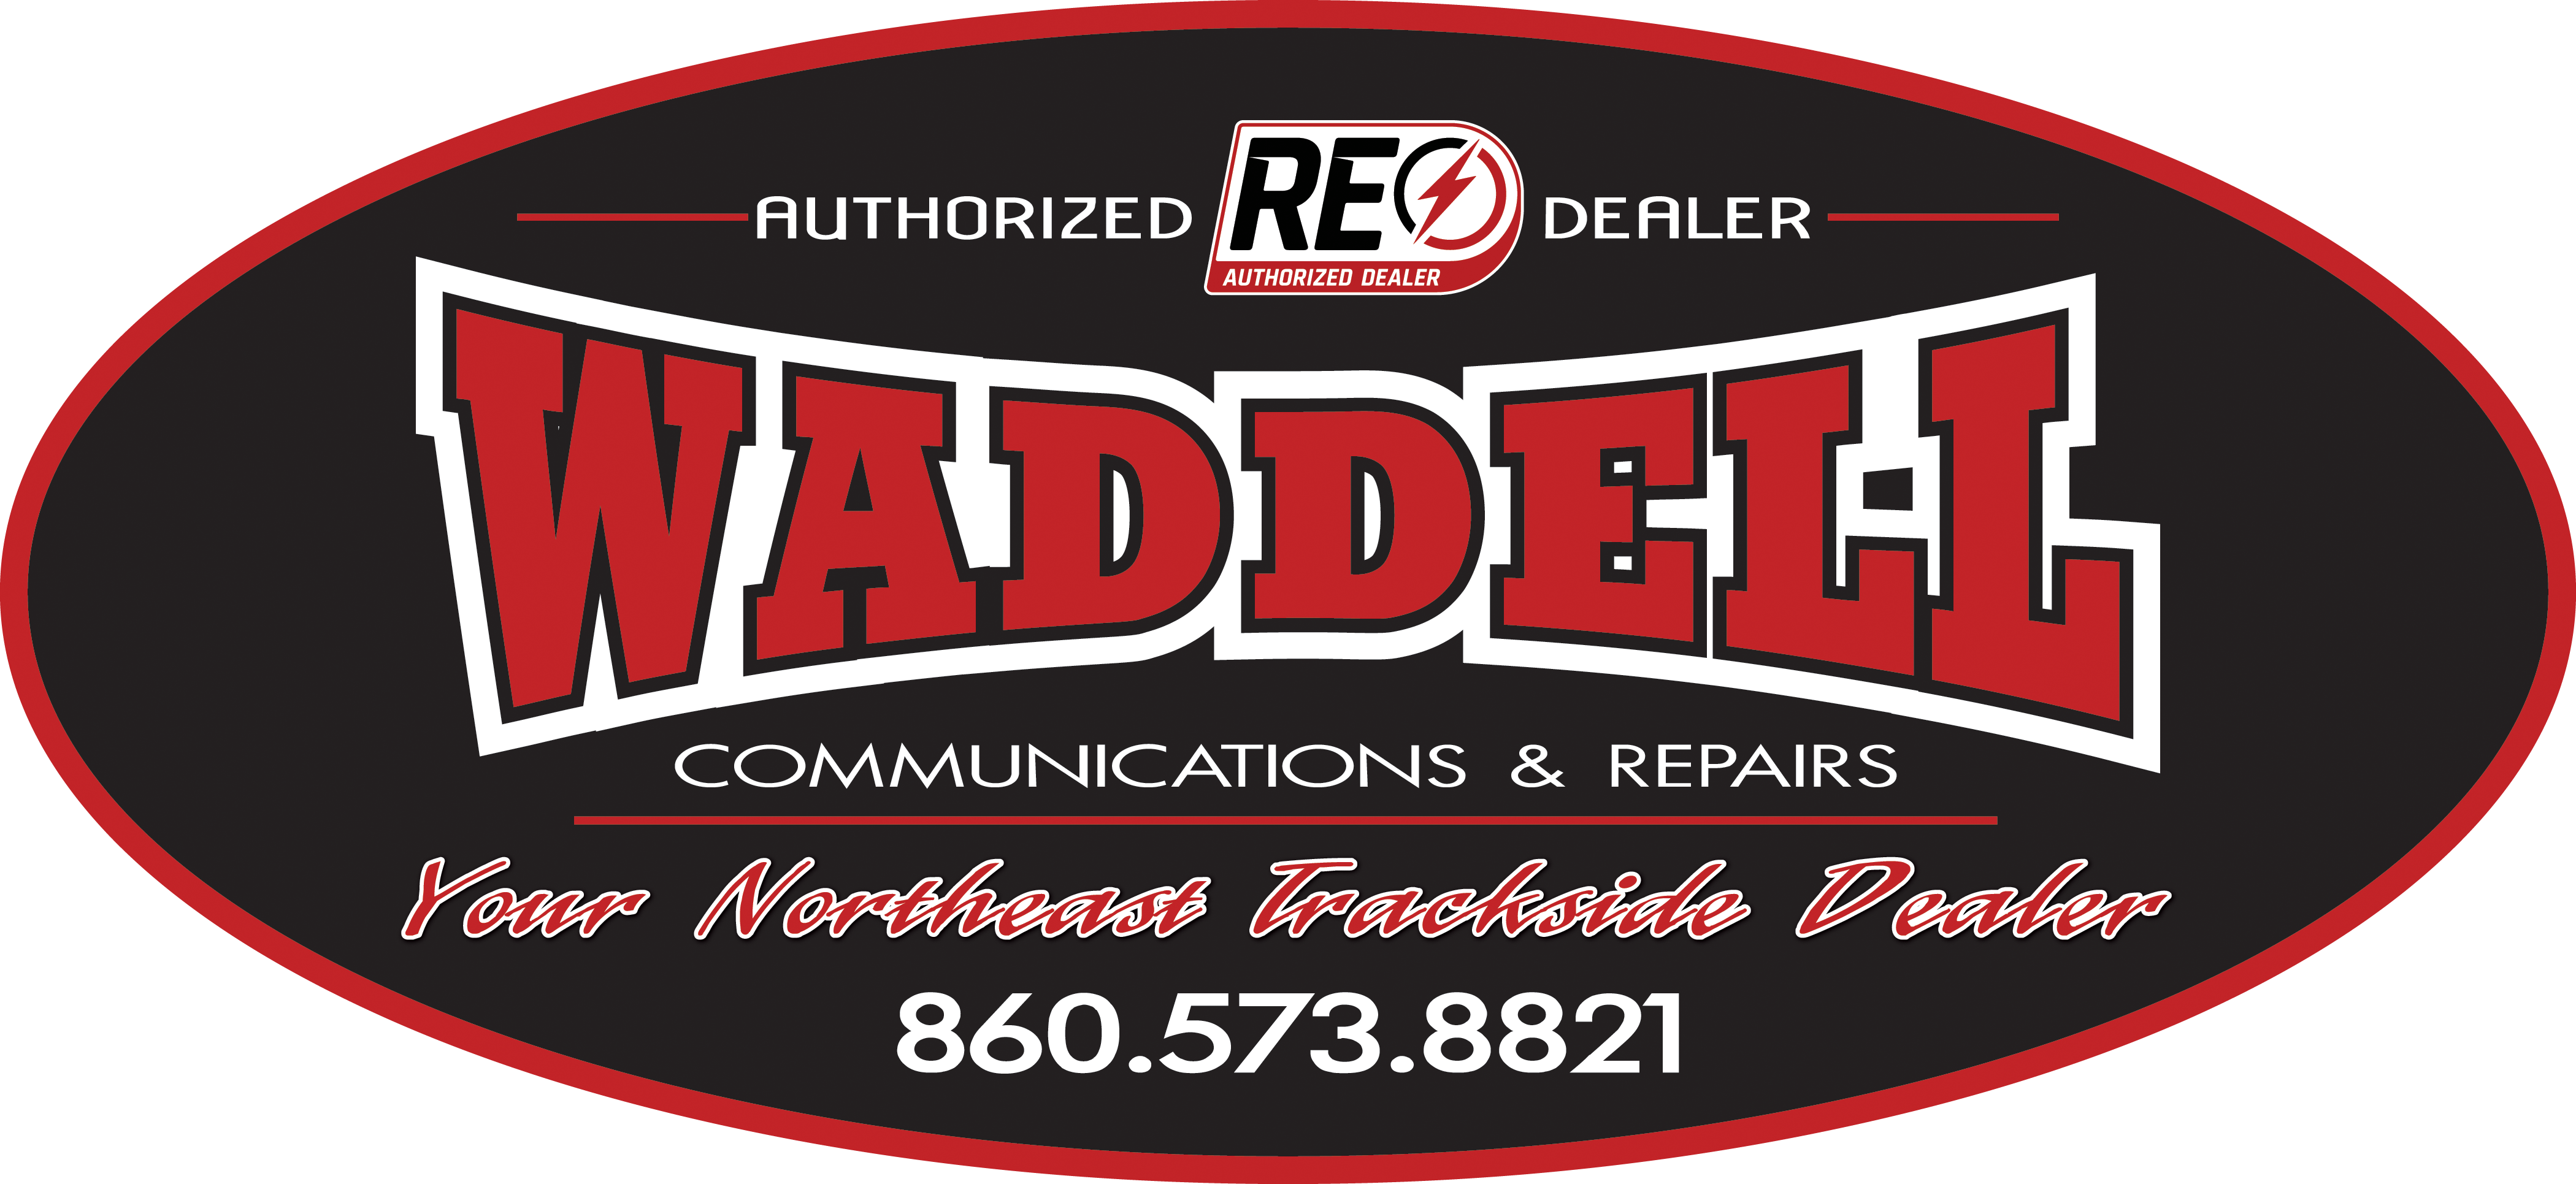 Waddell Website Logo